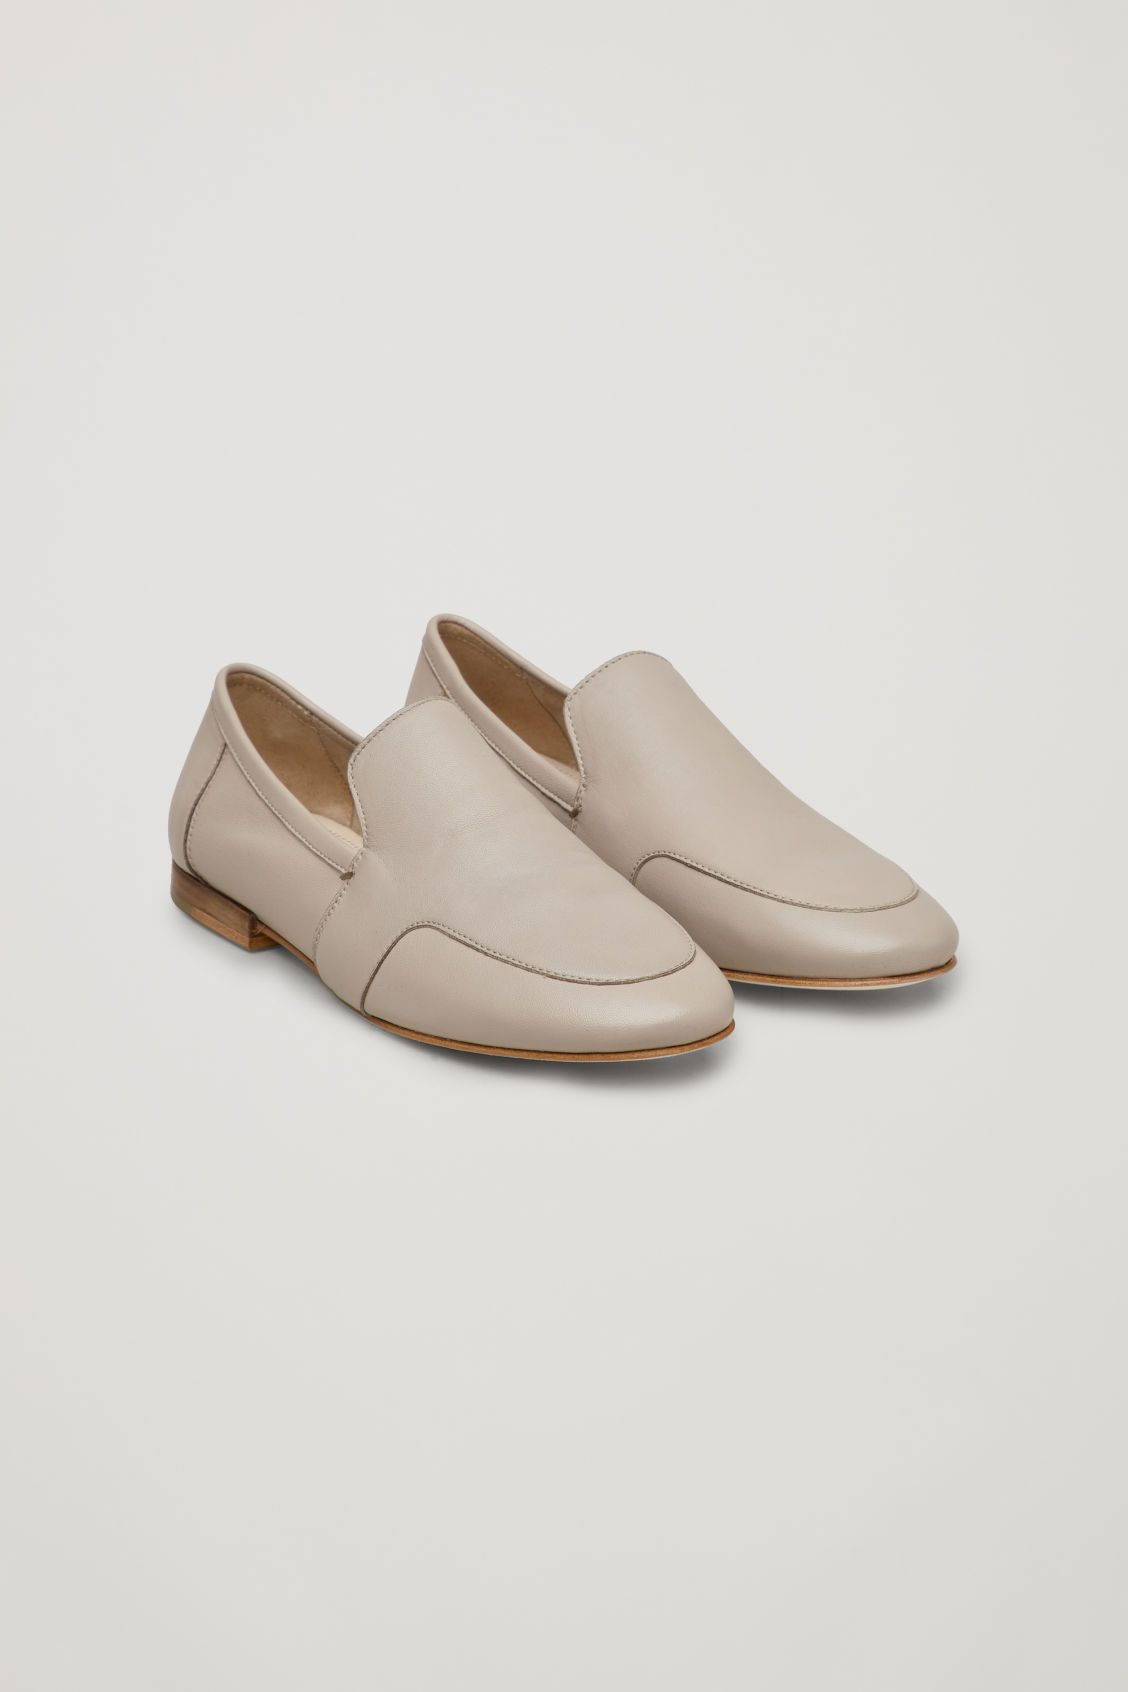 a83e324410 SOFT LOAFERS - Light taupe - Shoes - COS